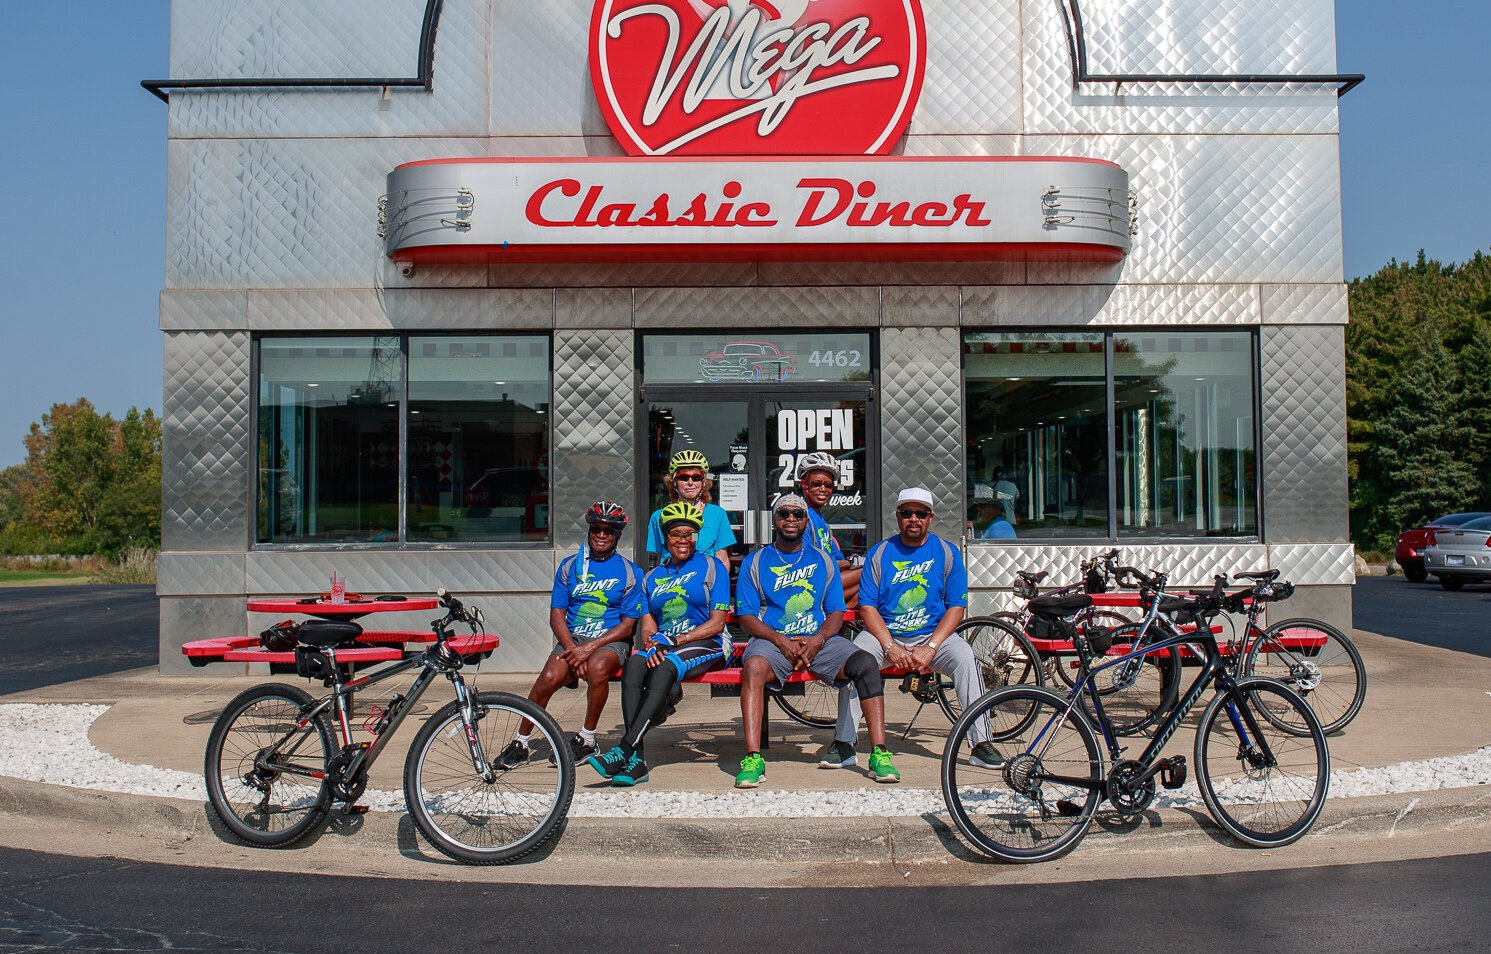 The Flint Faith Ryderz meet regularly to bike through Flint and surrounding areas.